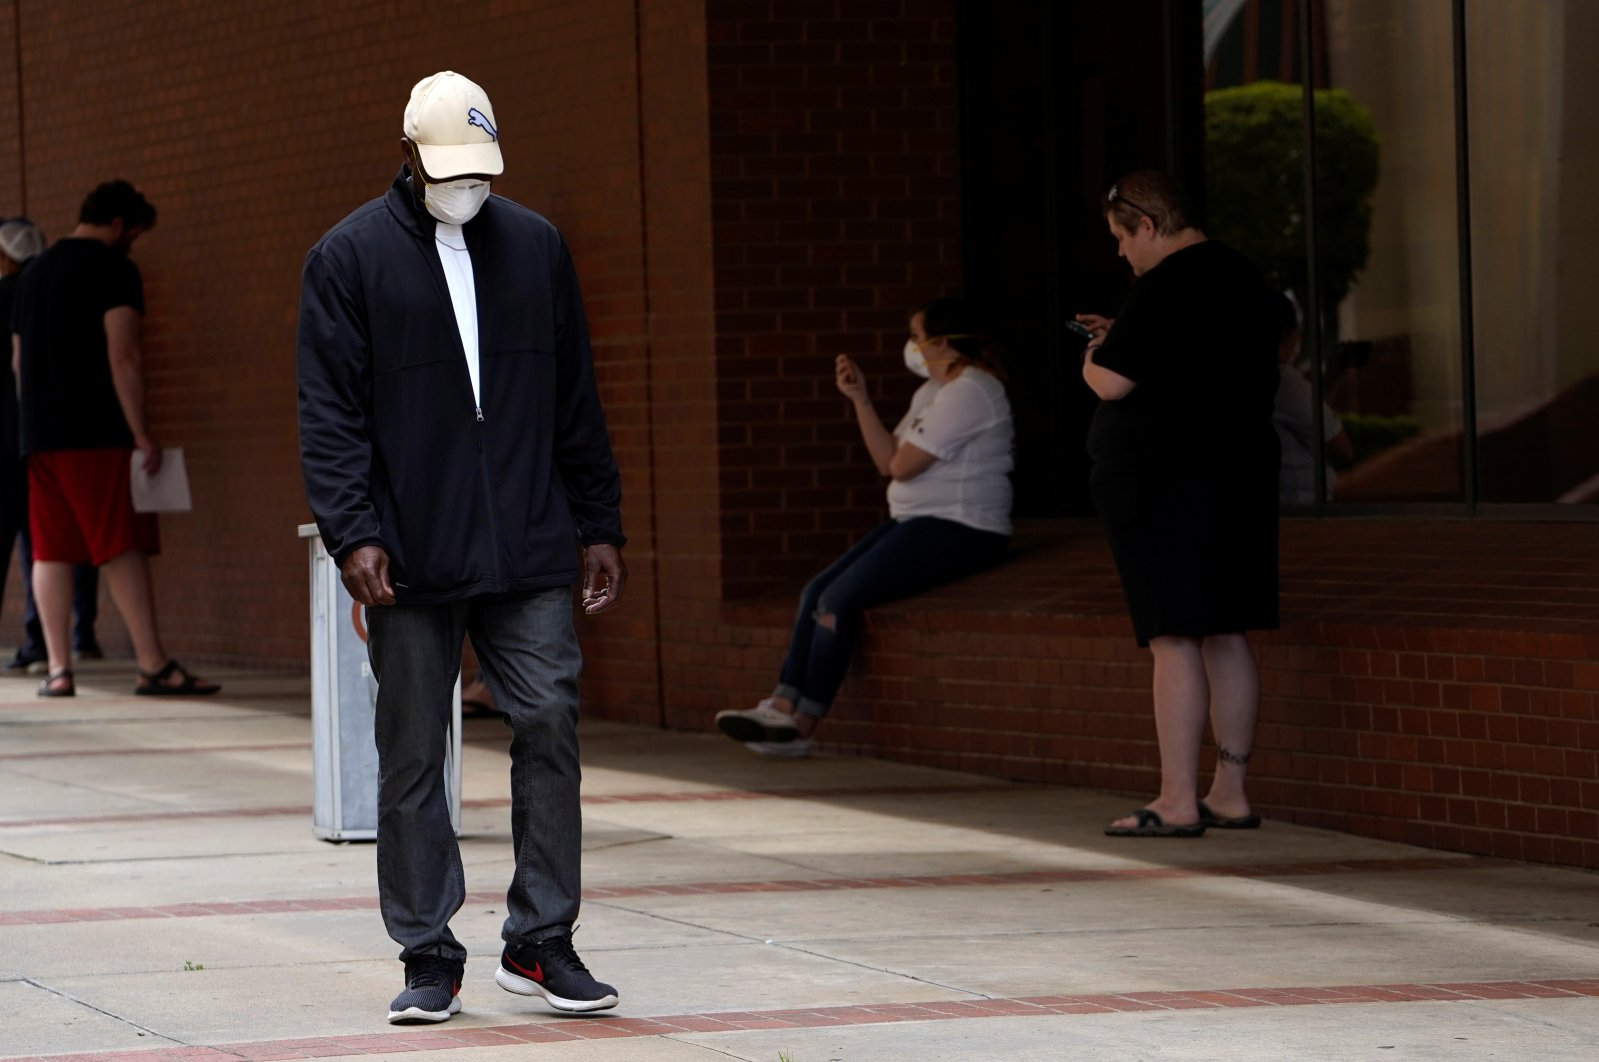 A man who lost his job walks past others as they wait in line to file for unemployment during the coronavirus pandemic, at an Arkansas Workforce Center in Fort Smith, Arkansas, U.S., April 6, 2020. (Reuters Photo)